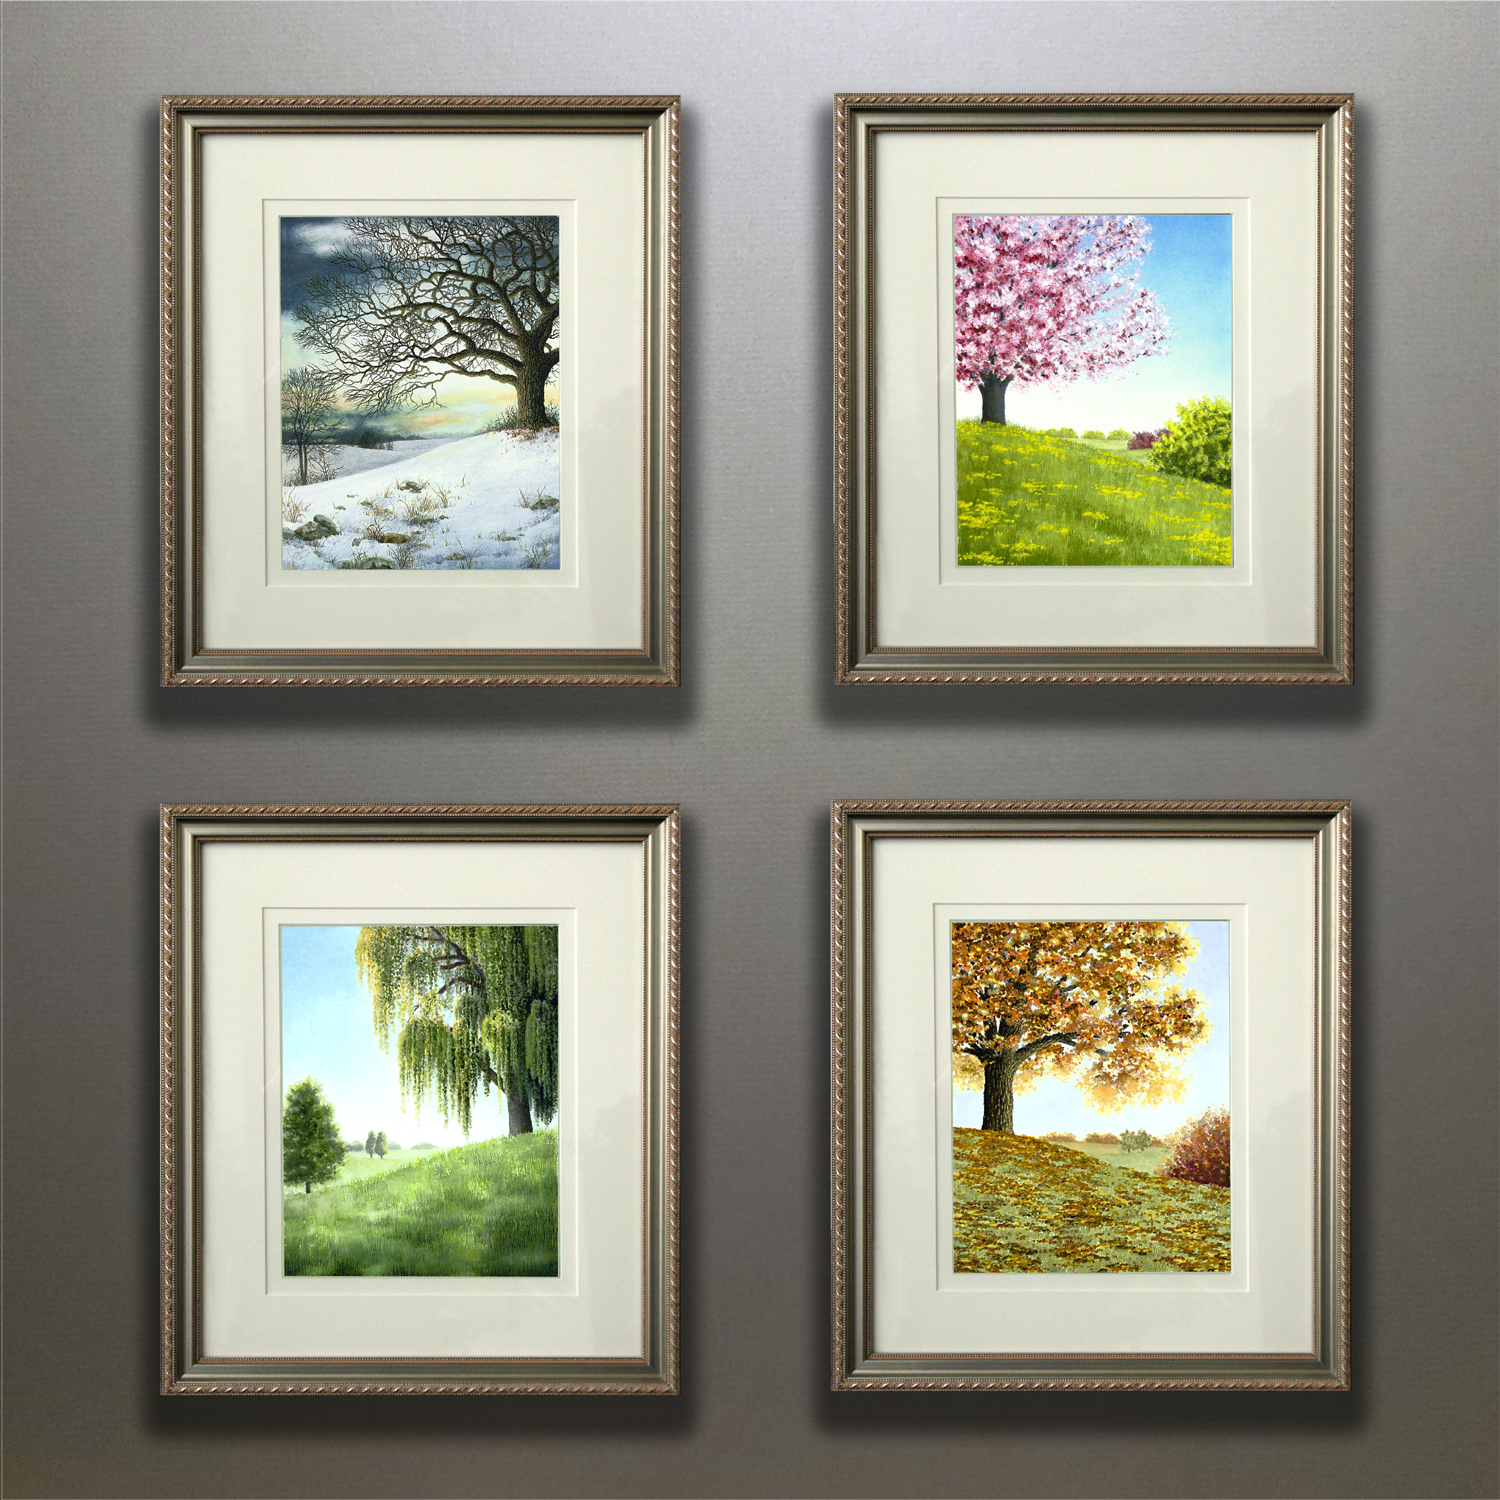 SEASONS SUITE FRAMED GROUPING